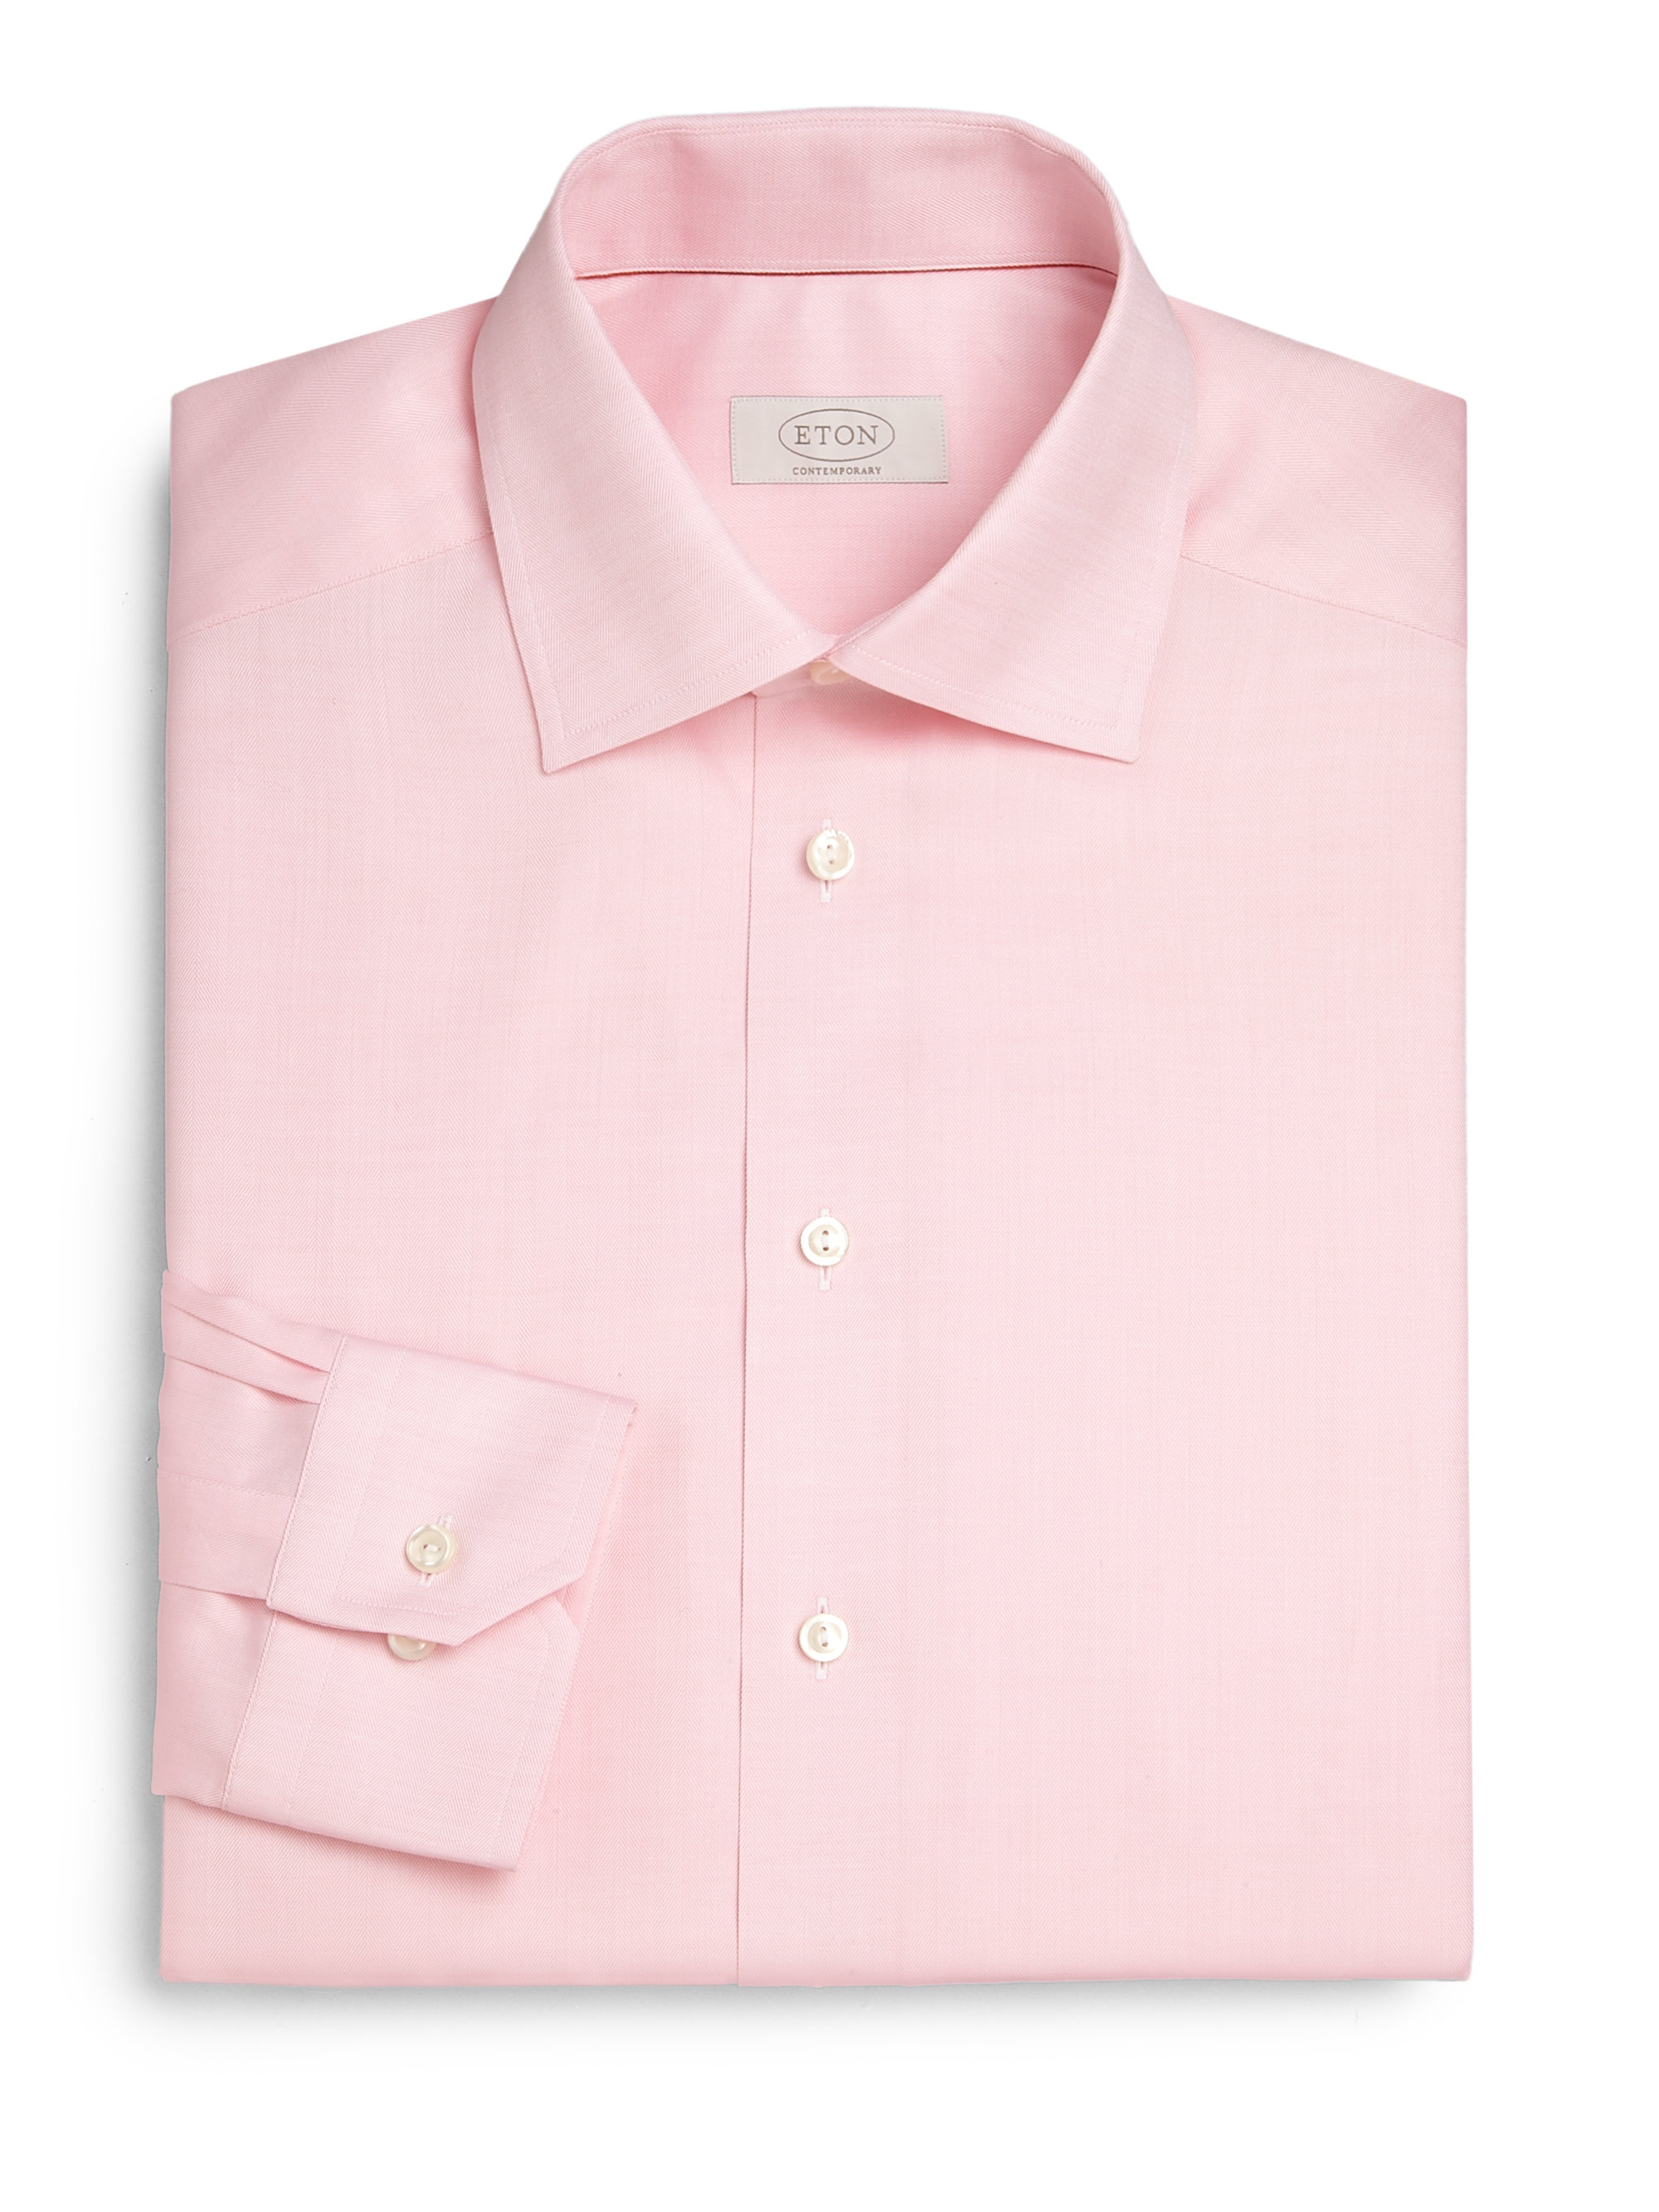 Pink Dress Shirt Men - Cocktail Dresses 2016